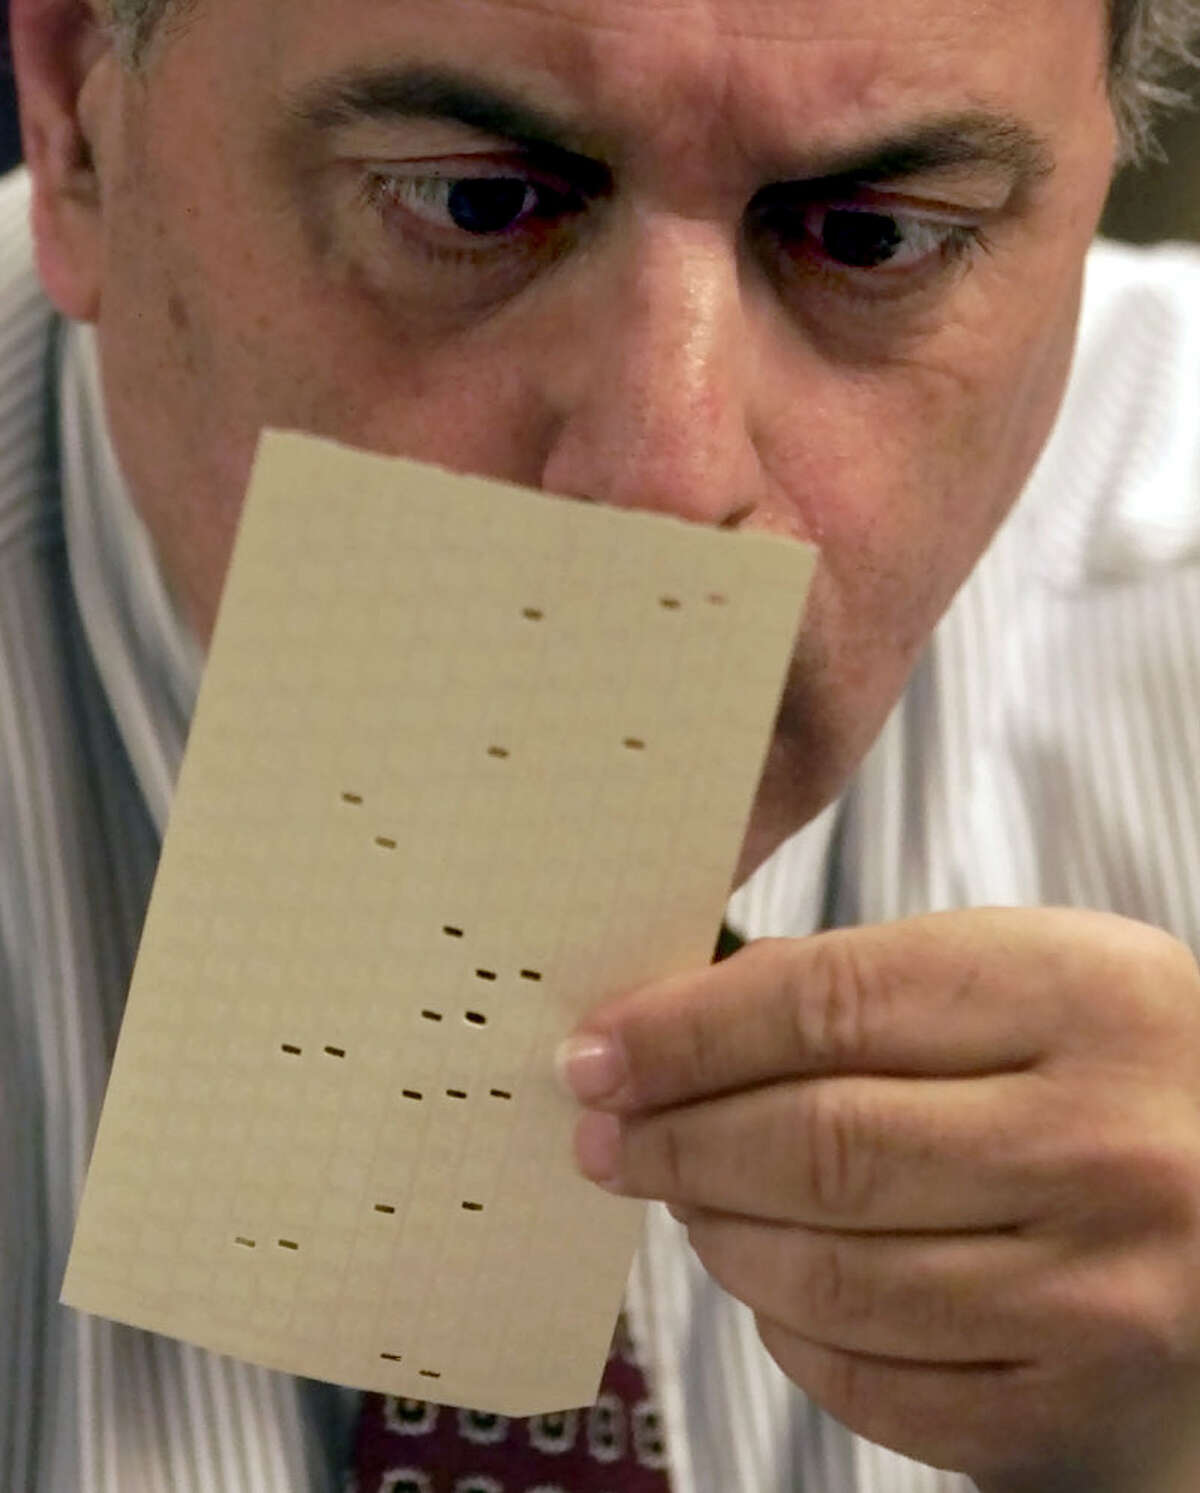 In 2000, the hanging chad controversy helped tip the presidential election to George W. Bush. Some worry that a similar controversy could emerge this year.